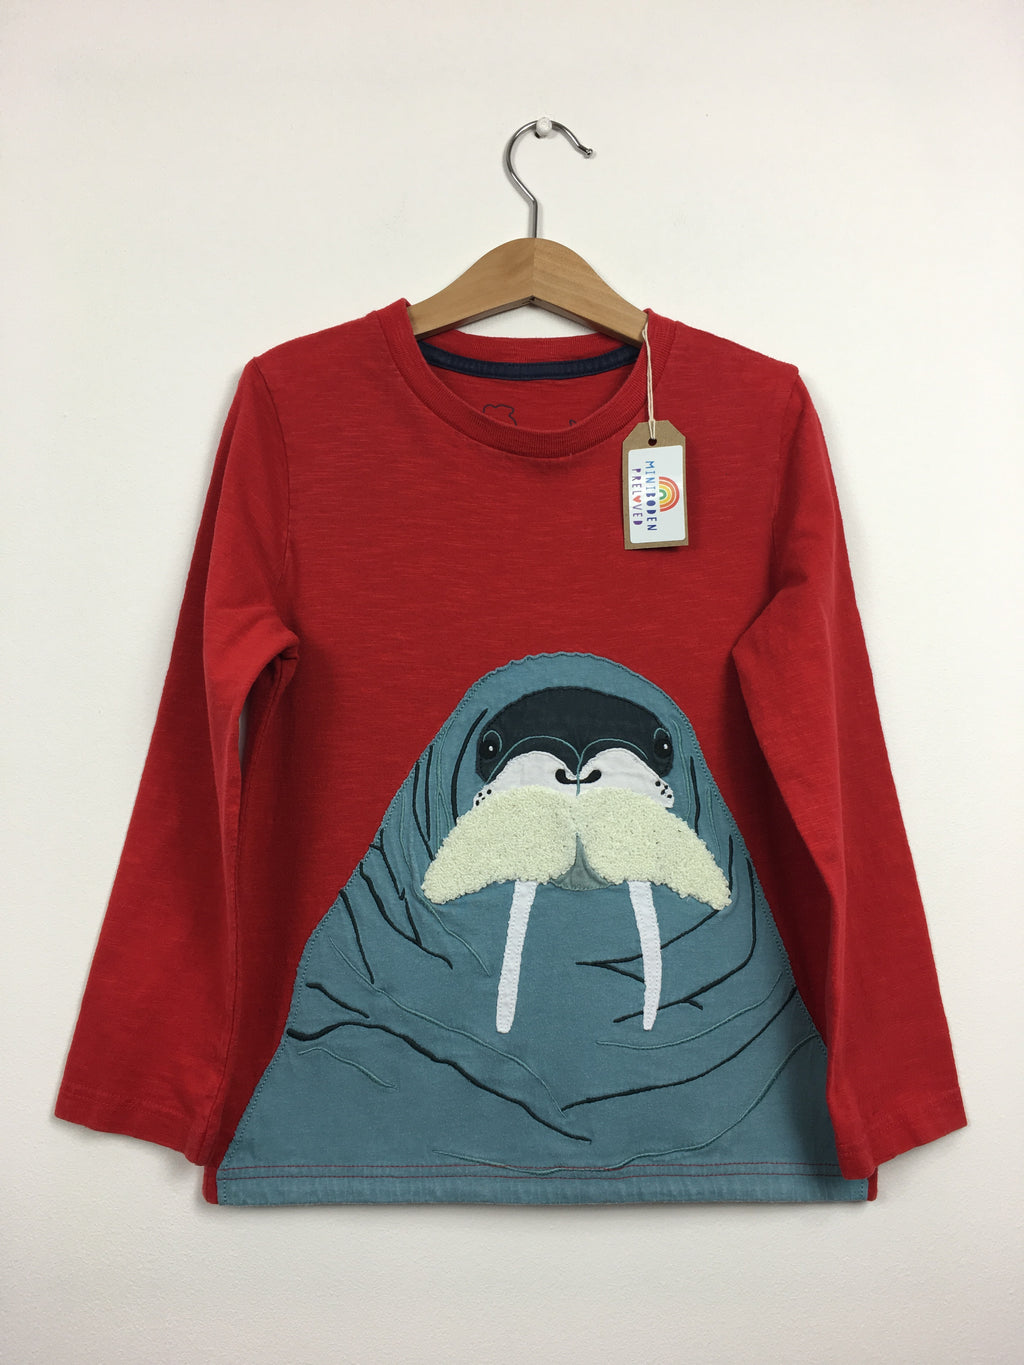 Appliqué Sea Lion Red Top (6-7 Years)